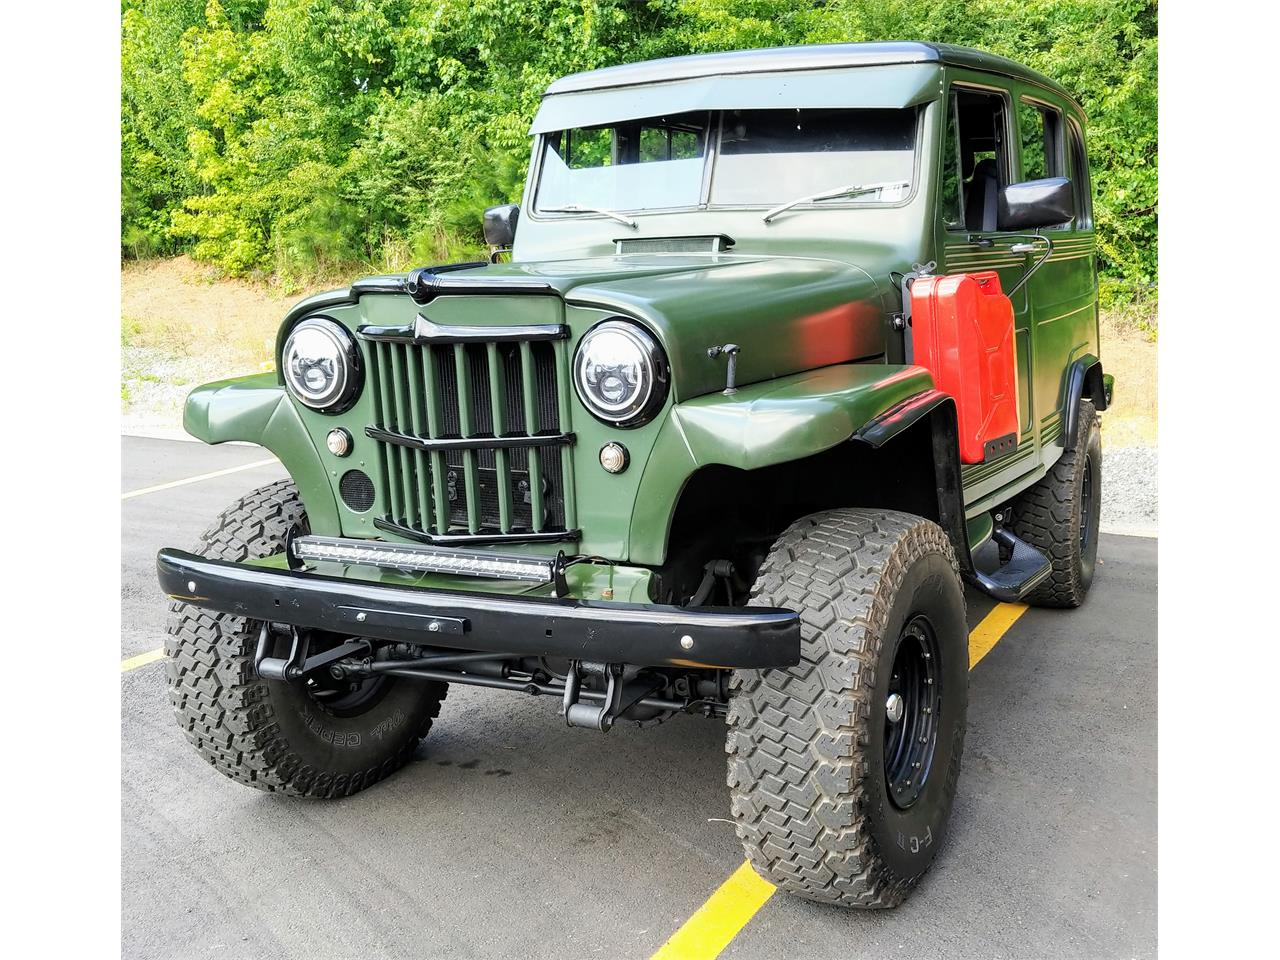 1958 Willys Overland Wagon For Sale Classiccars Com Cc 1229671